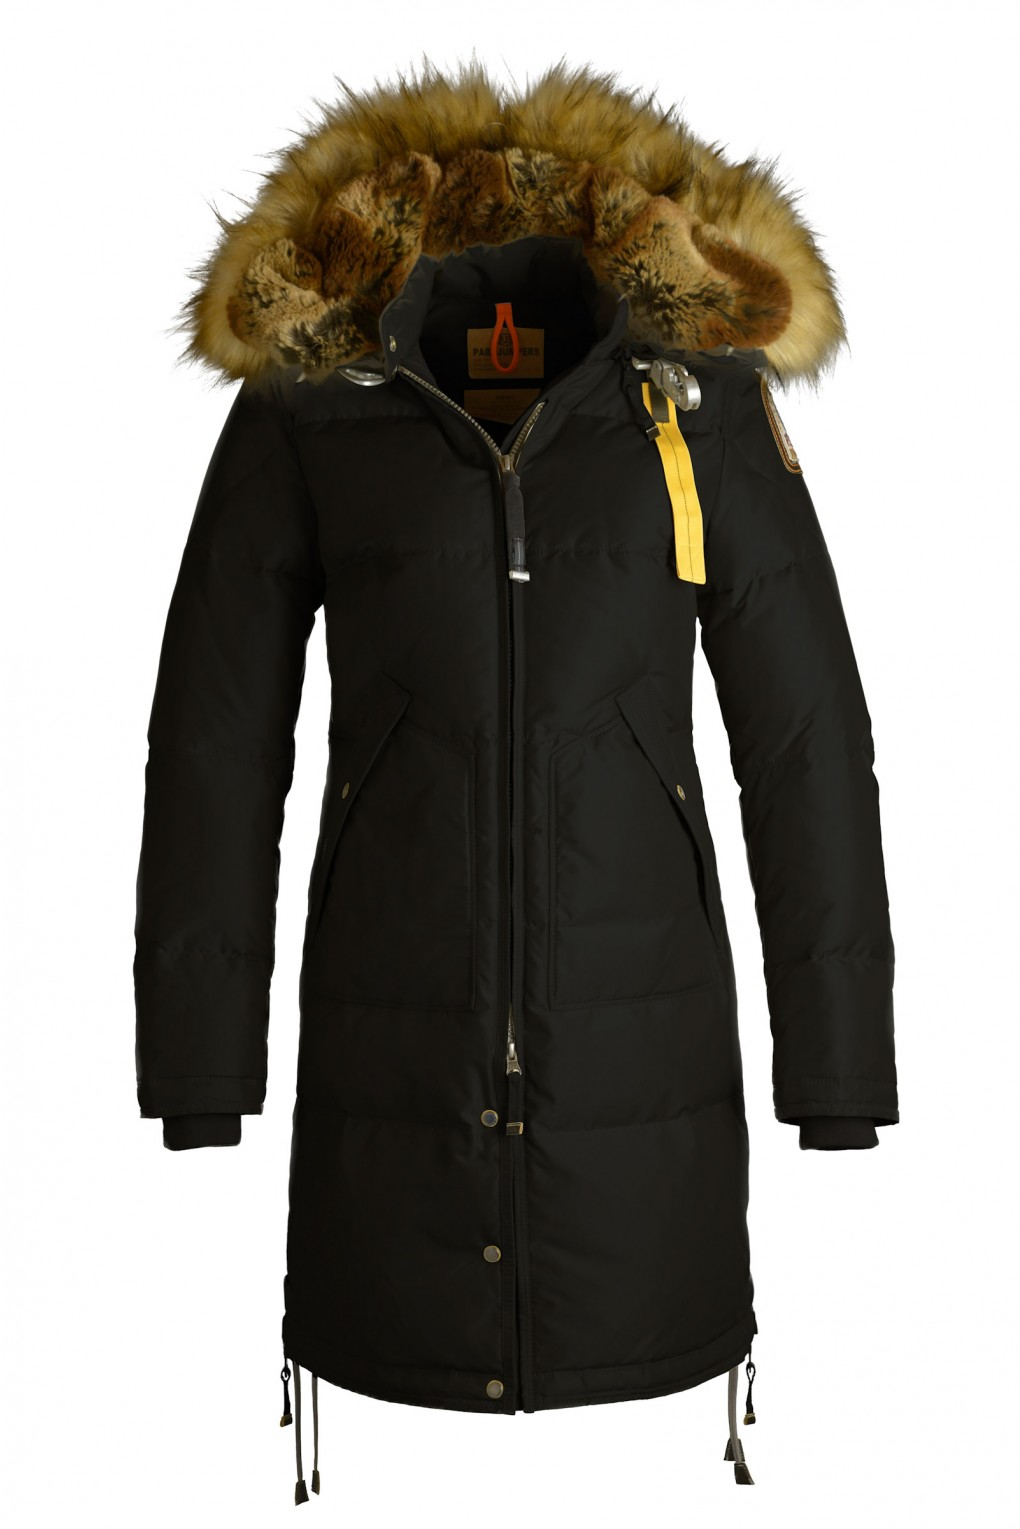 parajumpers LONG BEAR ECO woman outerwear Black